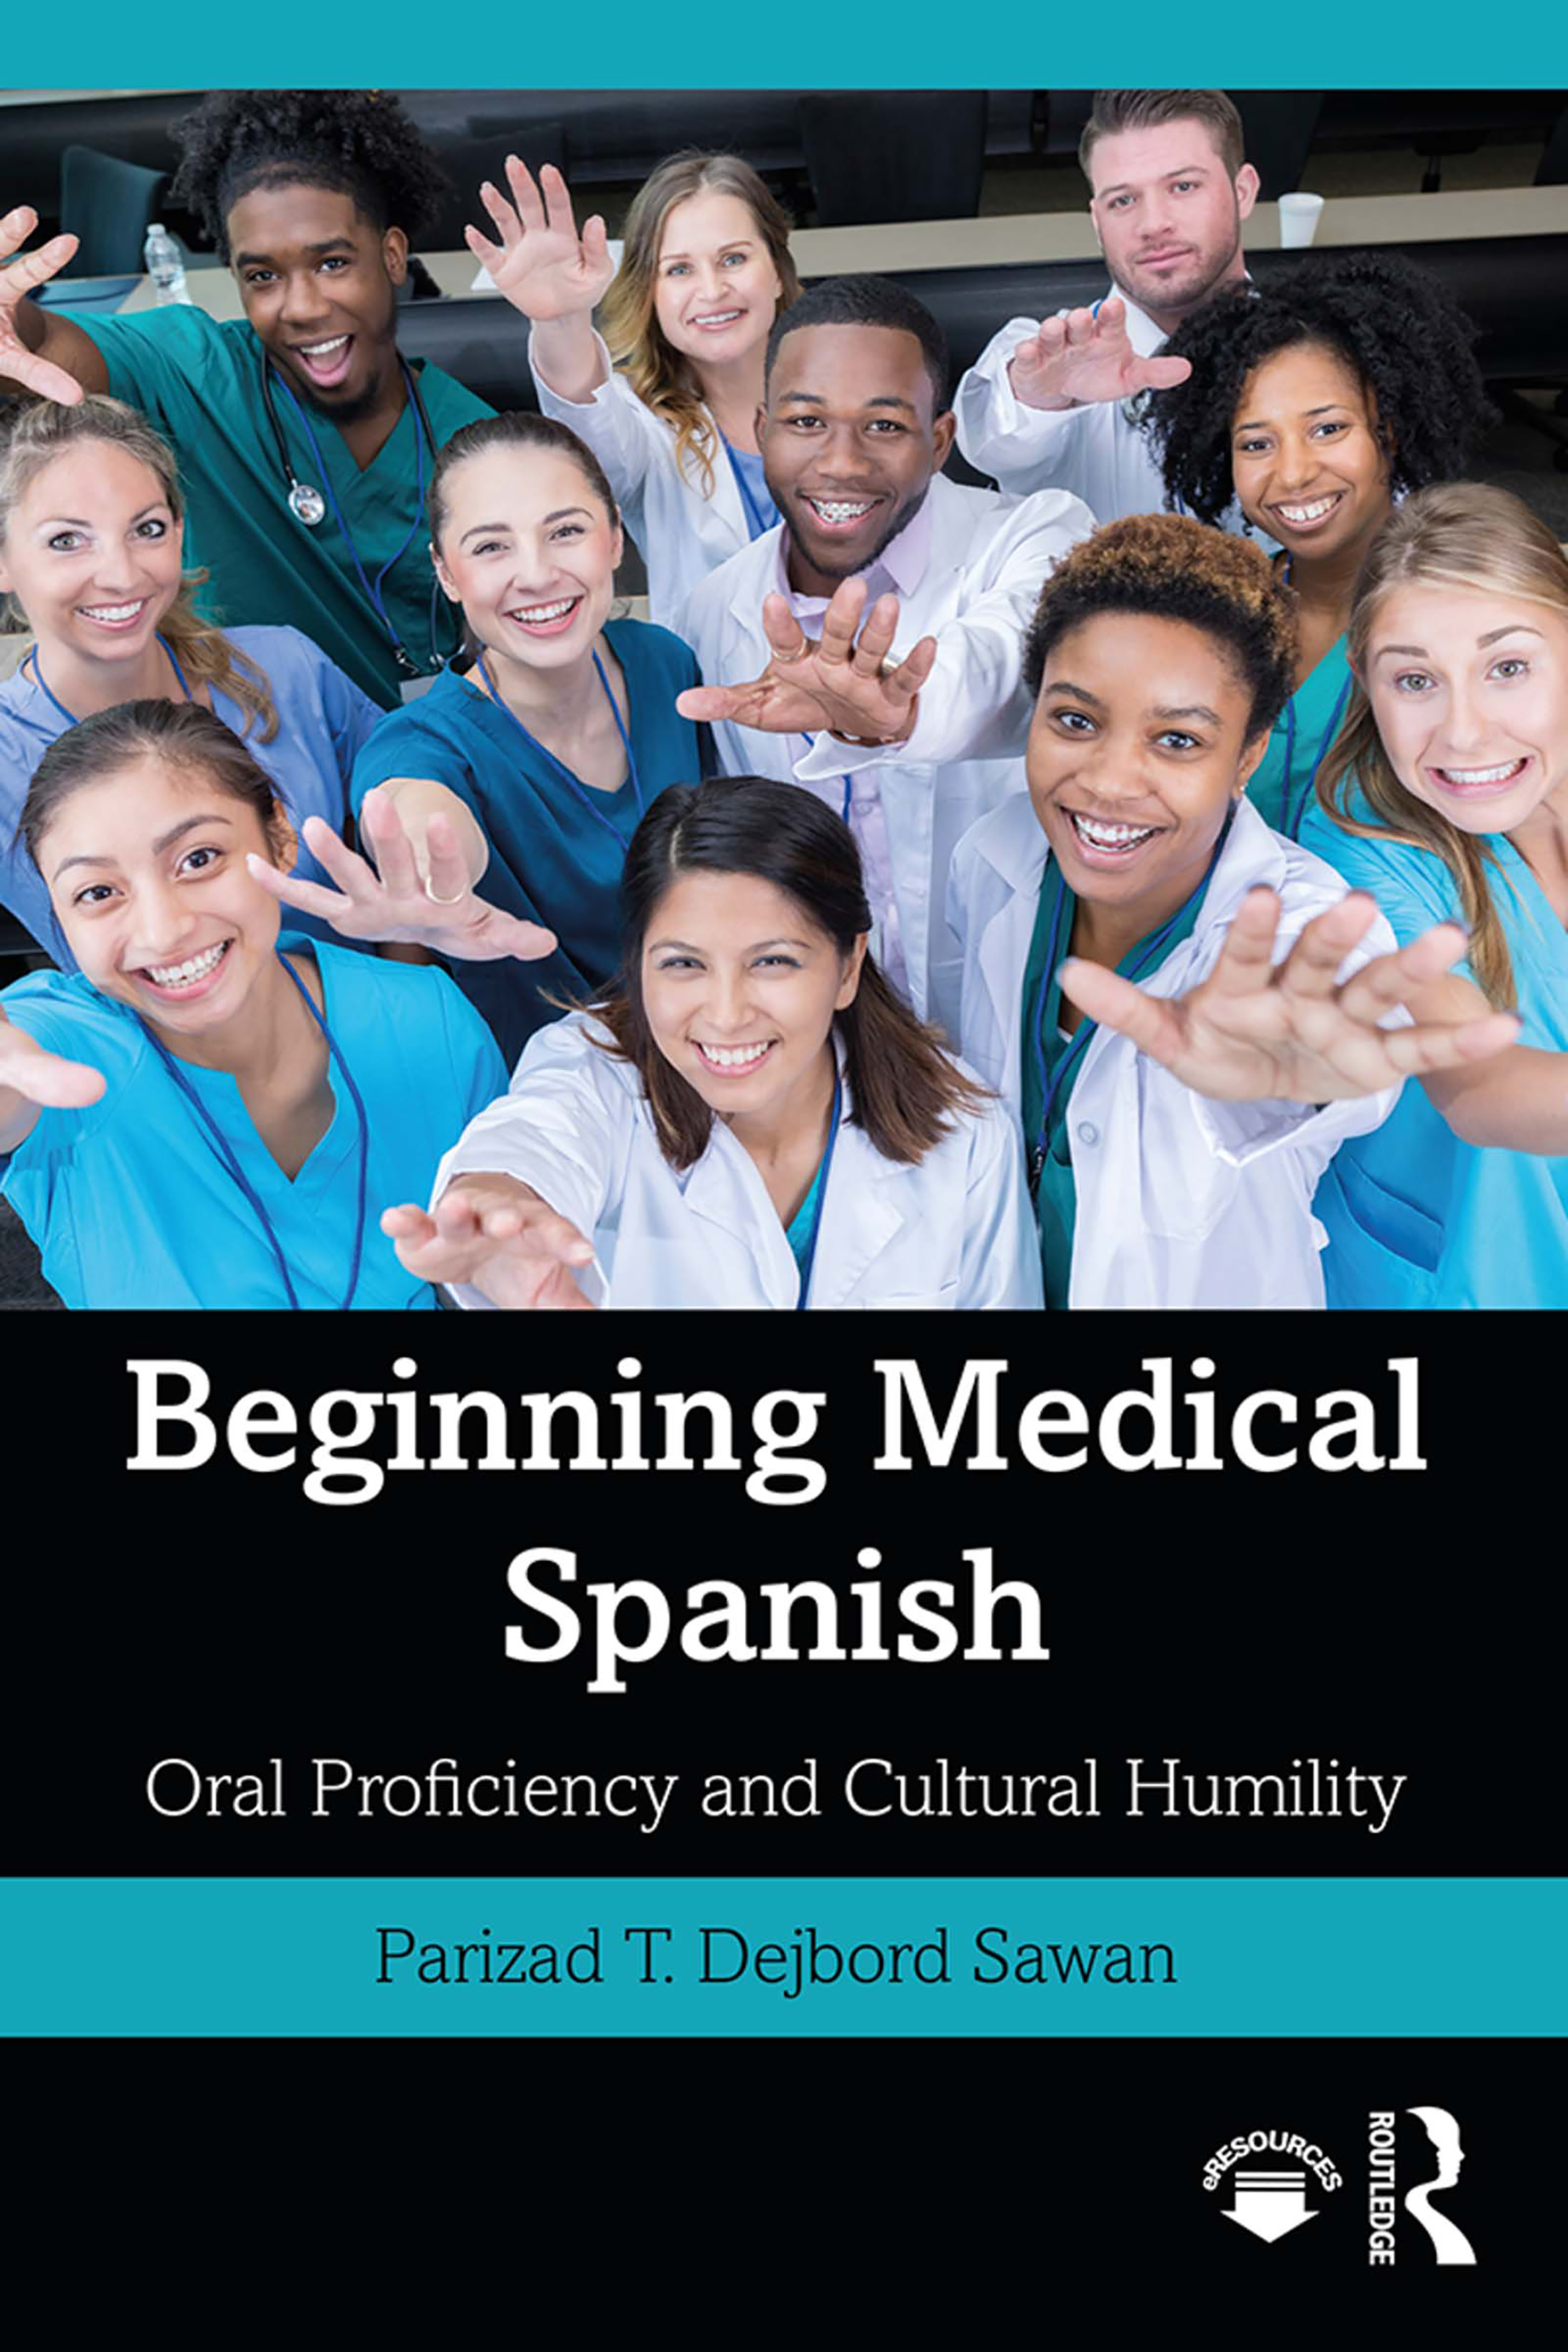 Beginning Medical Spanish: Oral Proficiency and Cultural Humility book cover